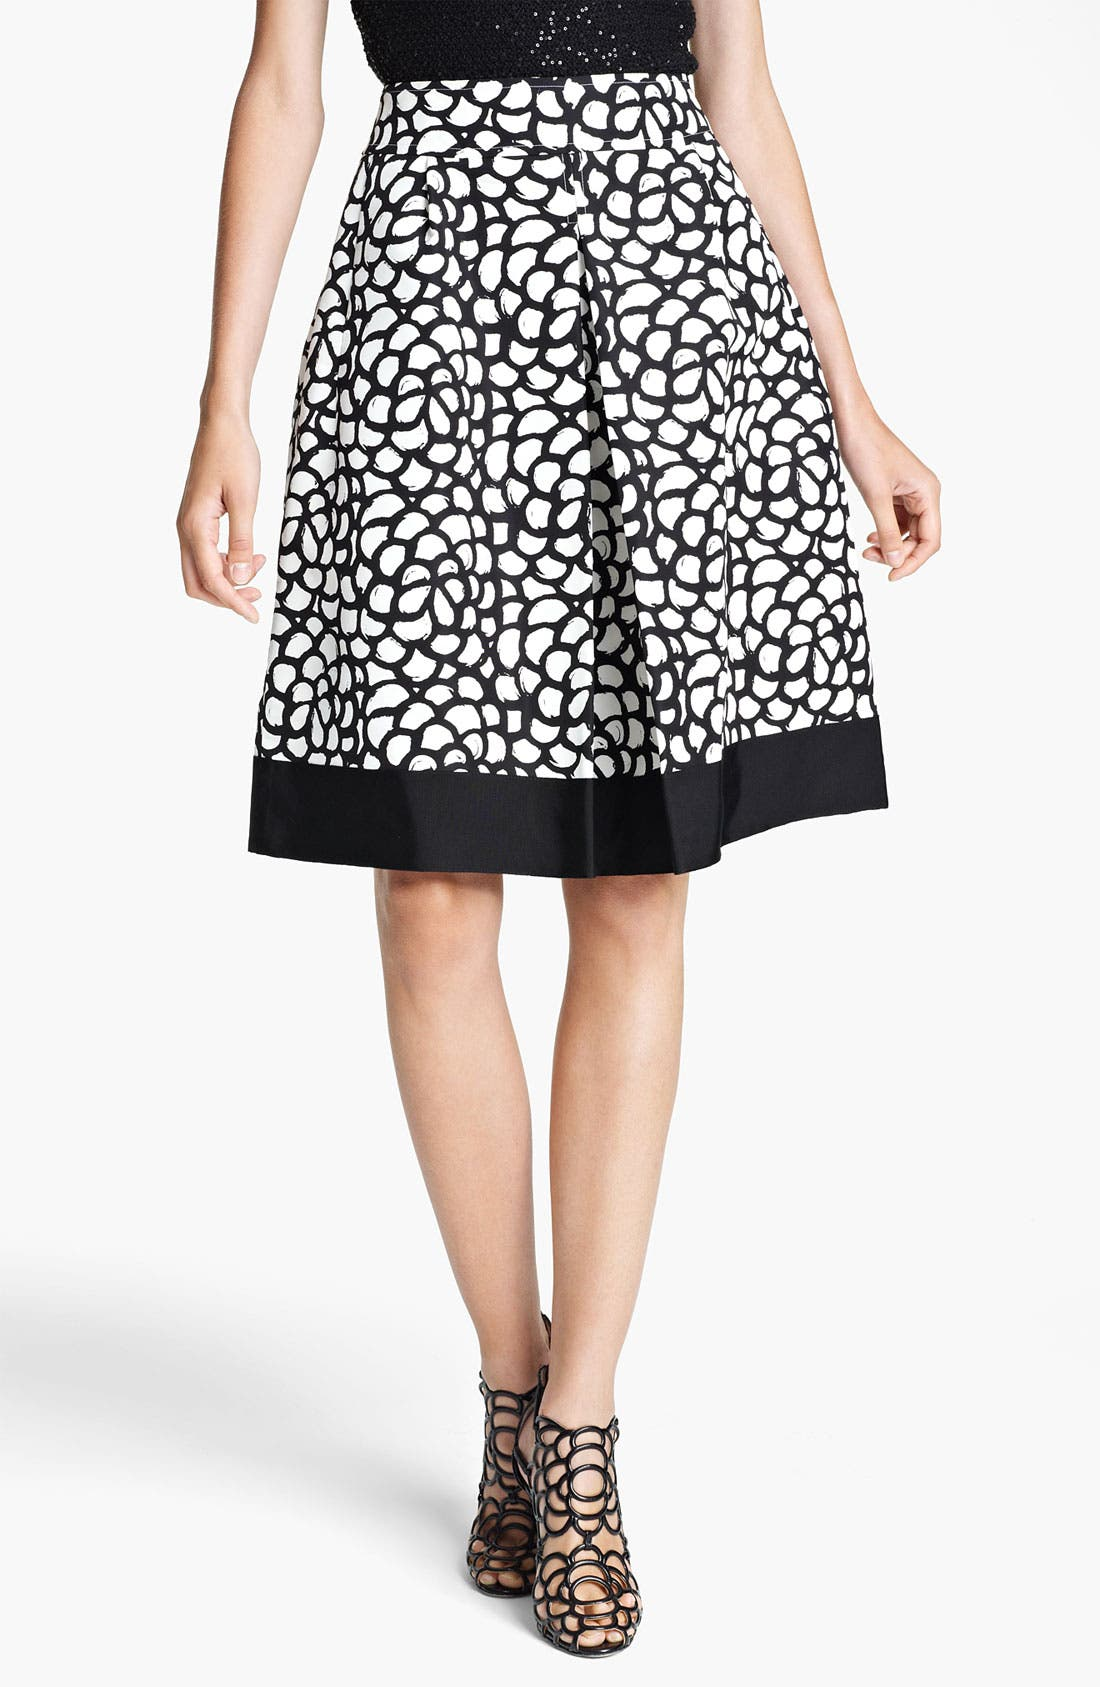 Alternate Image 1 Selected - Oscar de la Renta Print Pleated Skirt